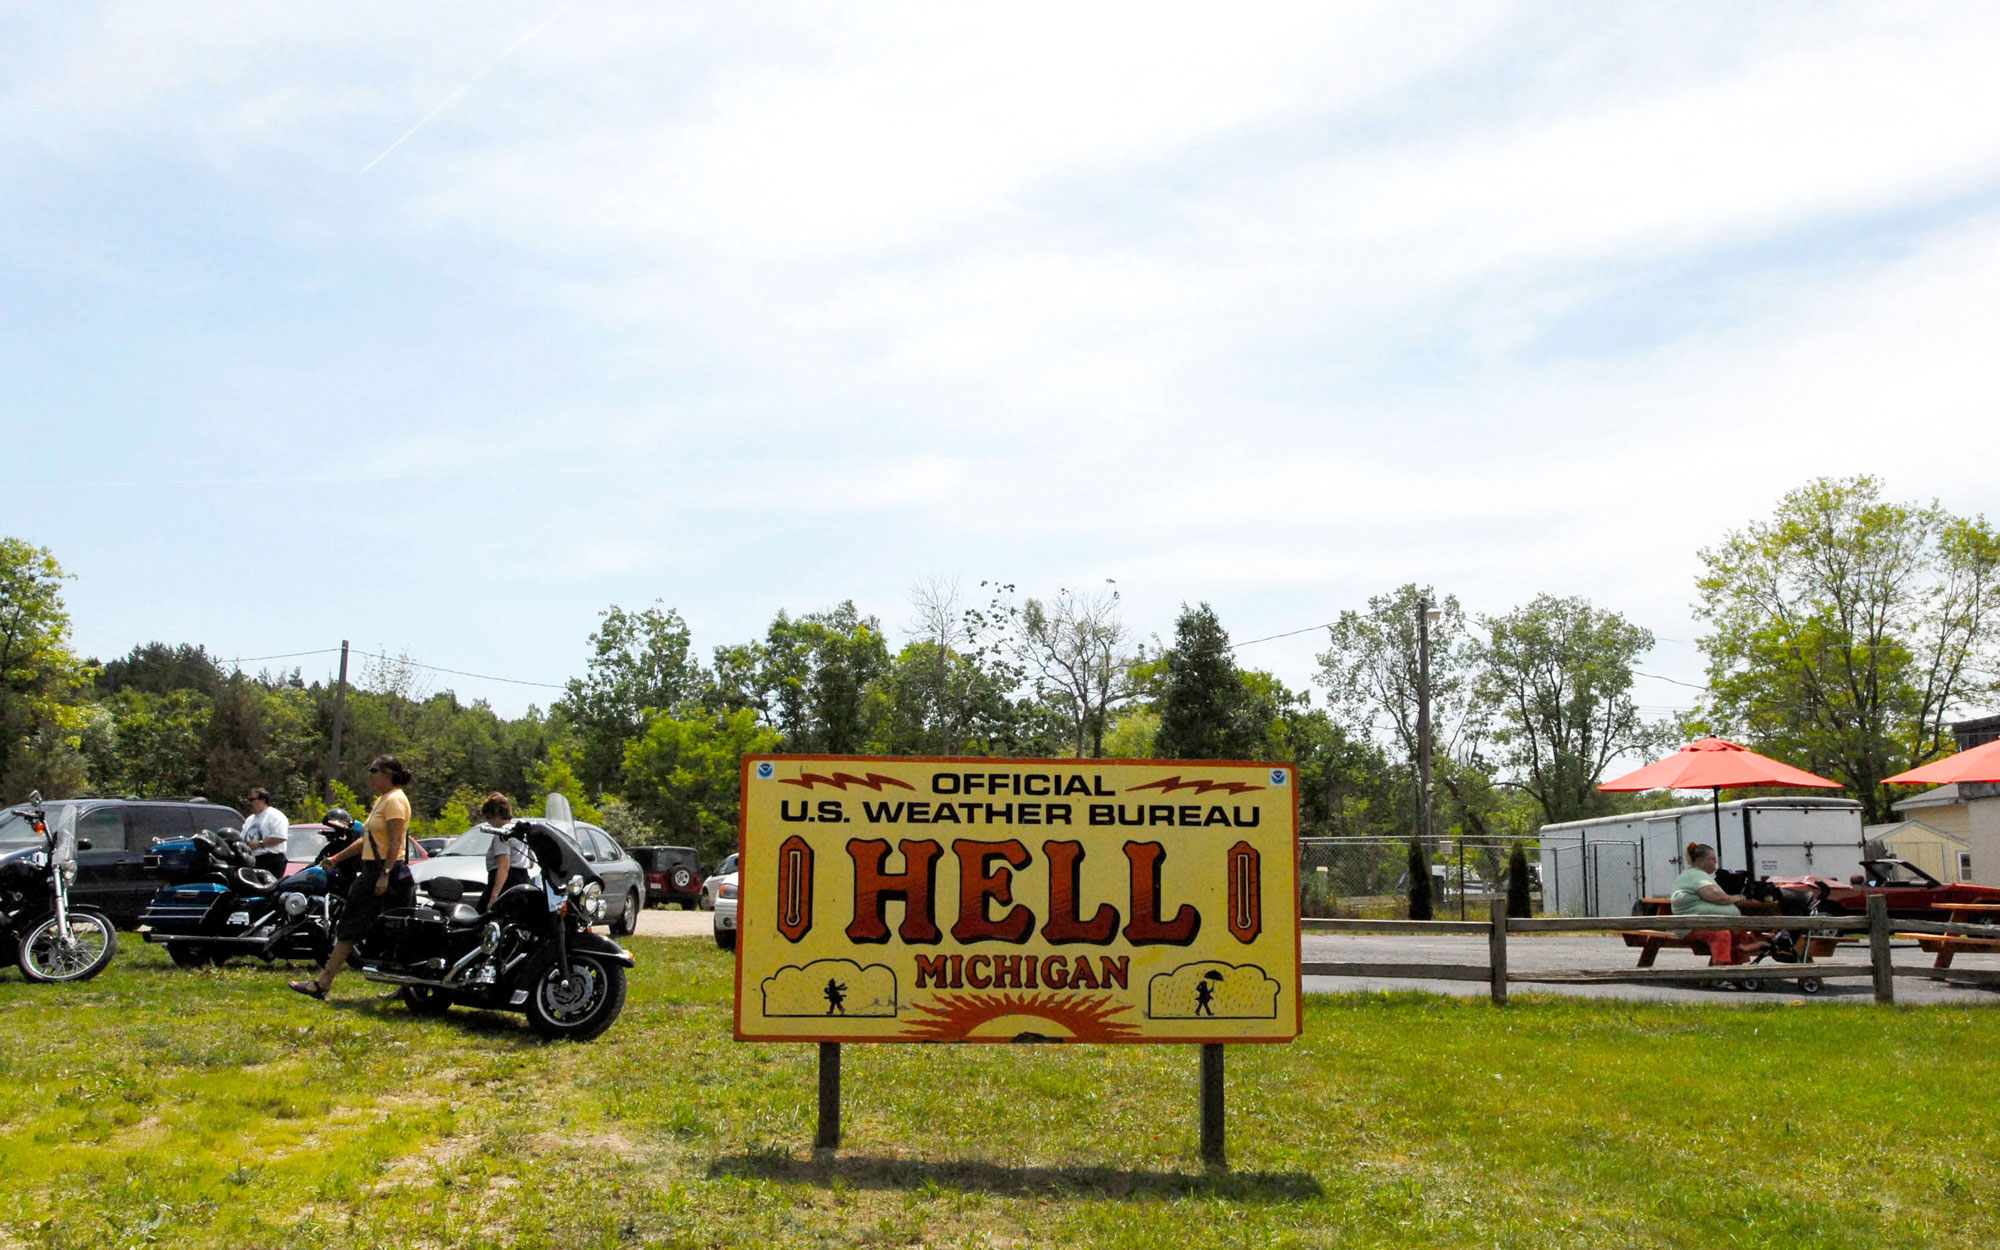 Weirdest Roadside Attractions: Michigan: Hell, Michigan